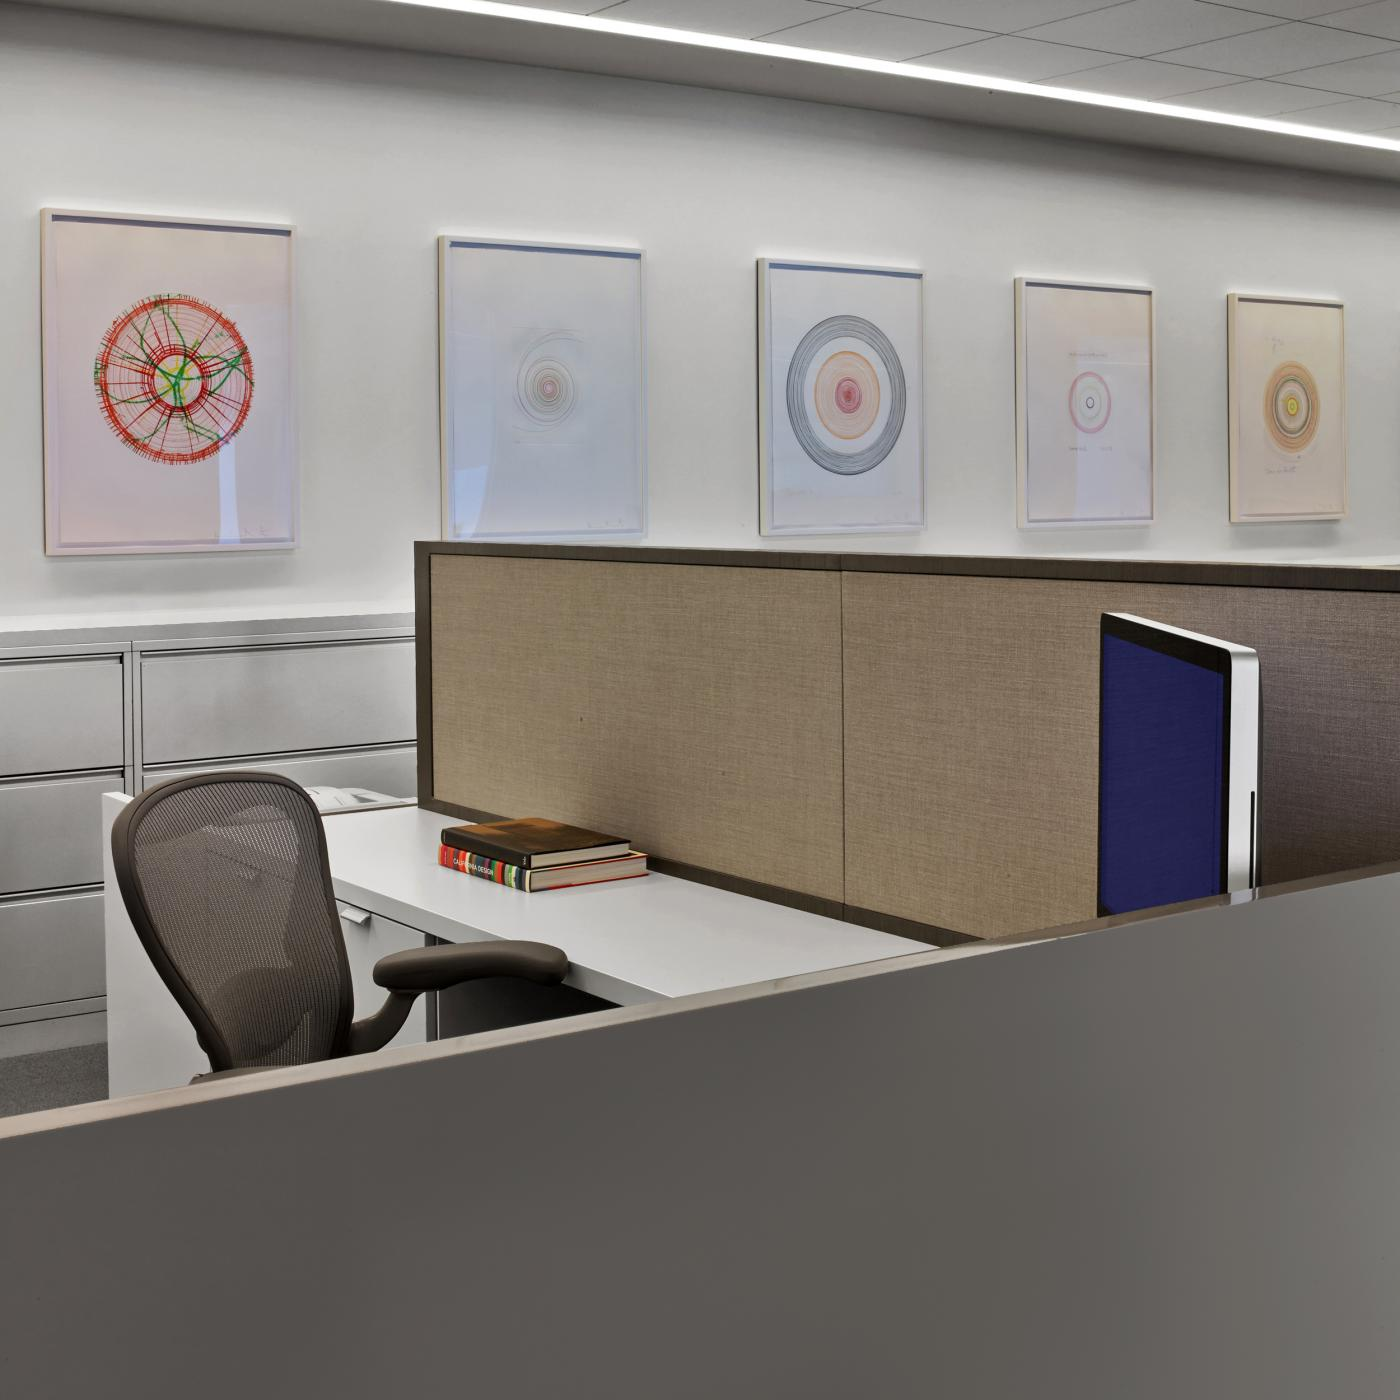 Open plan workstations feature white laminate and casework resulting in a beautiful, clean, and modern aesthetic.